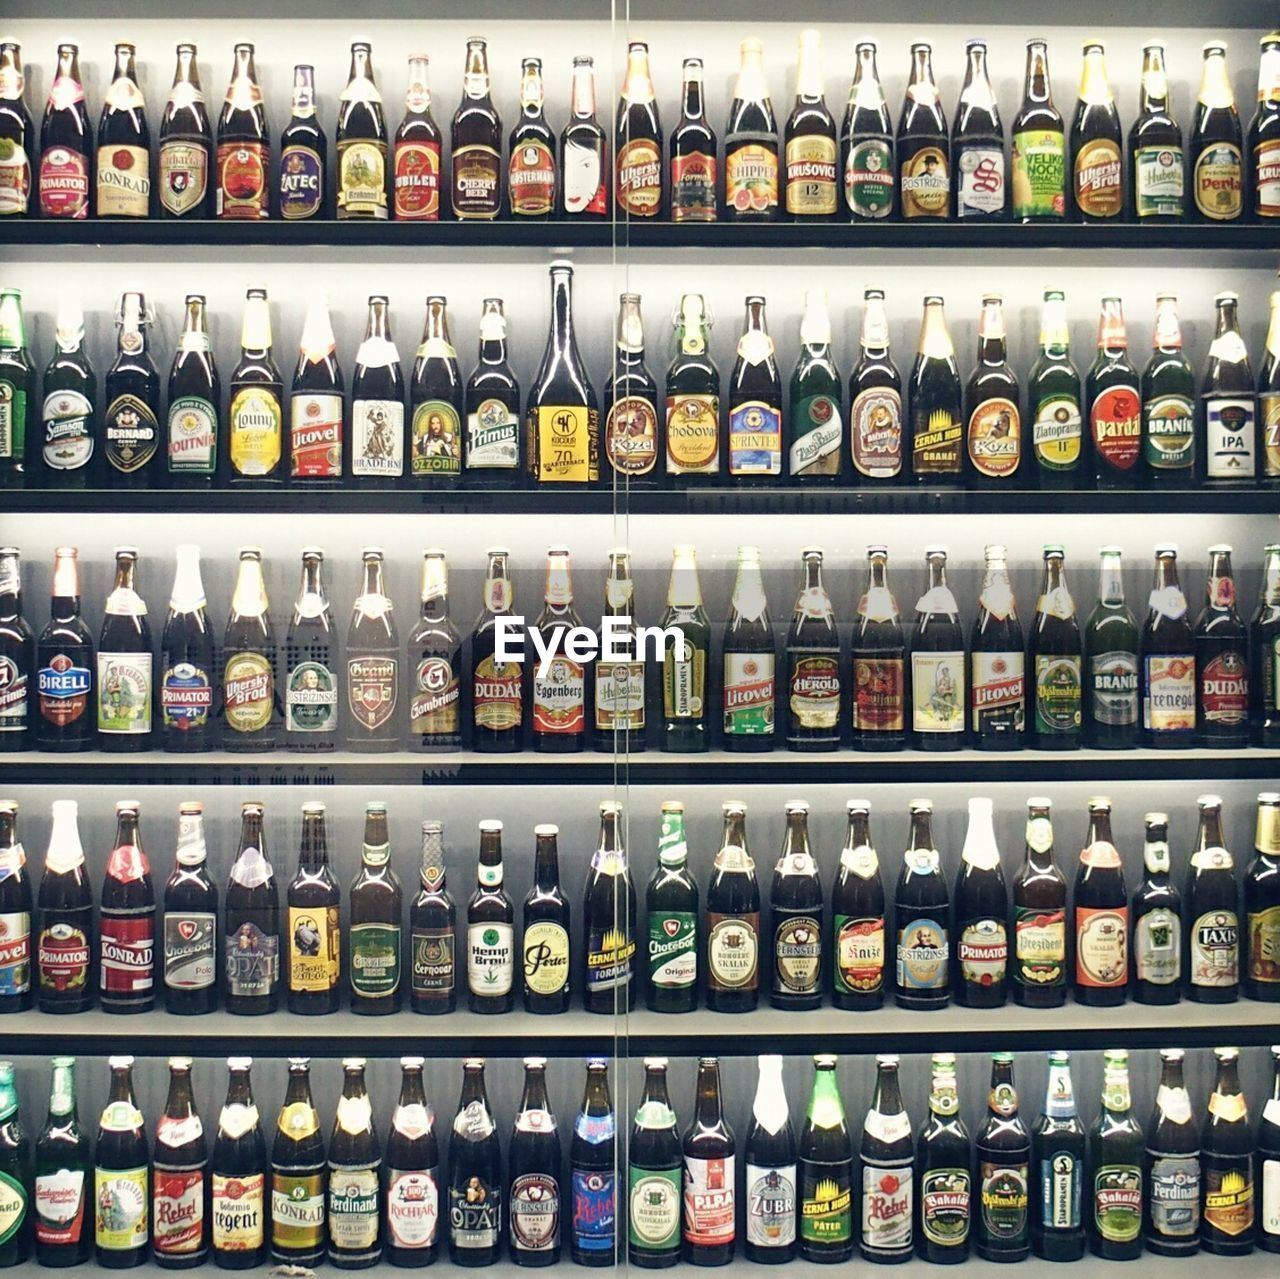 choice, variation, large group of objects, arrangement, in a row, abundance, side by side, container, order, bottle, collection, multi colored, no people, shelf, food and drink, refreshment, retail, drink, alcohol, sale, retail display, consumerism